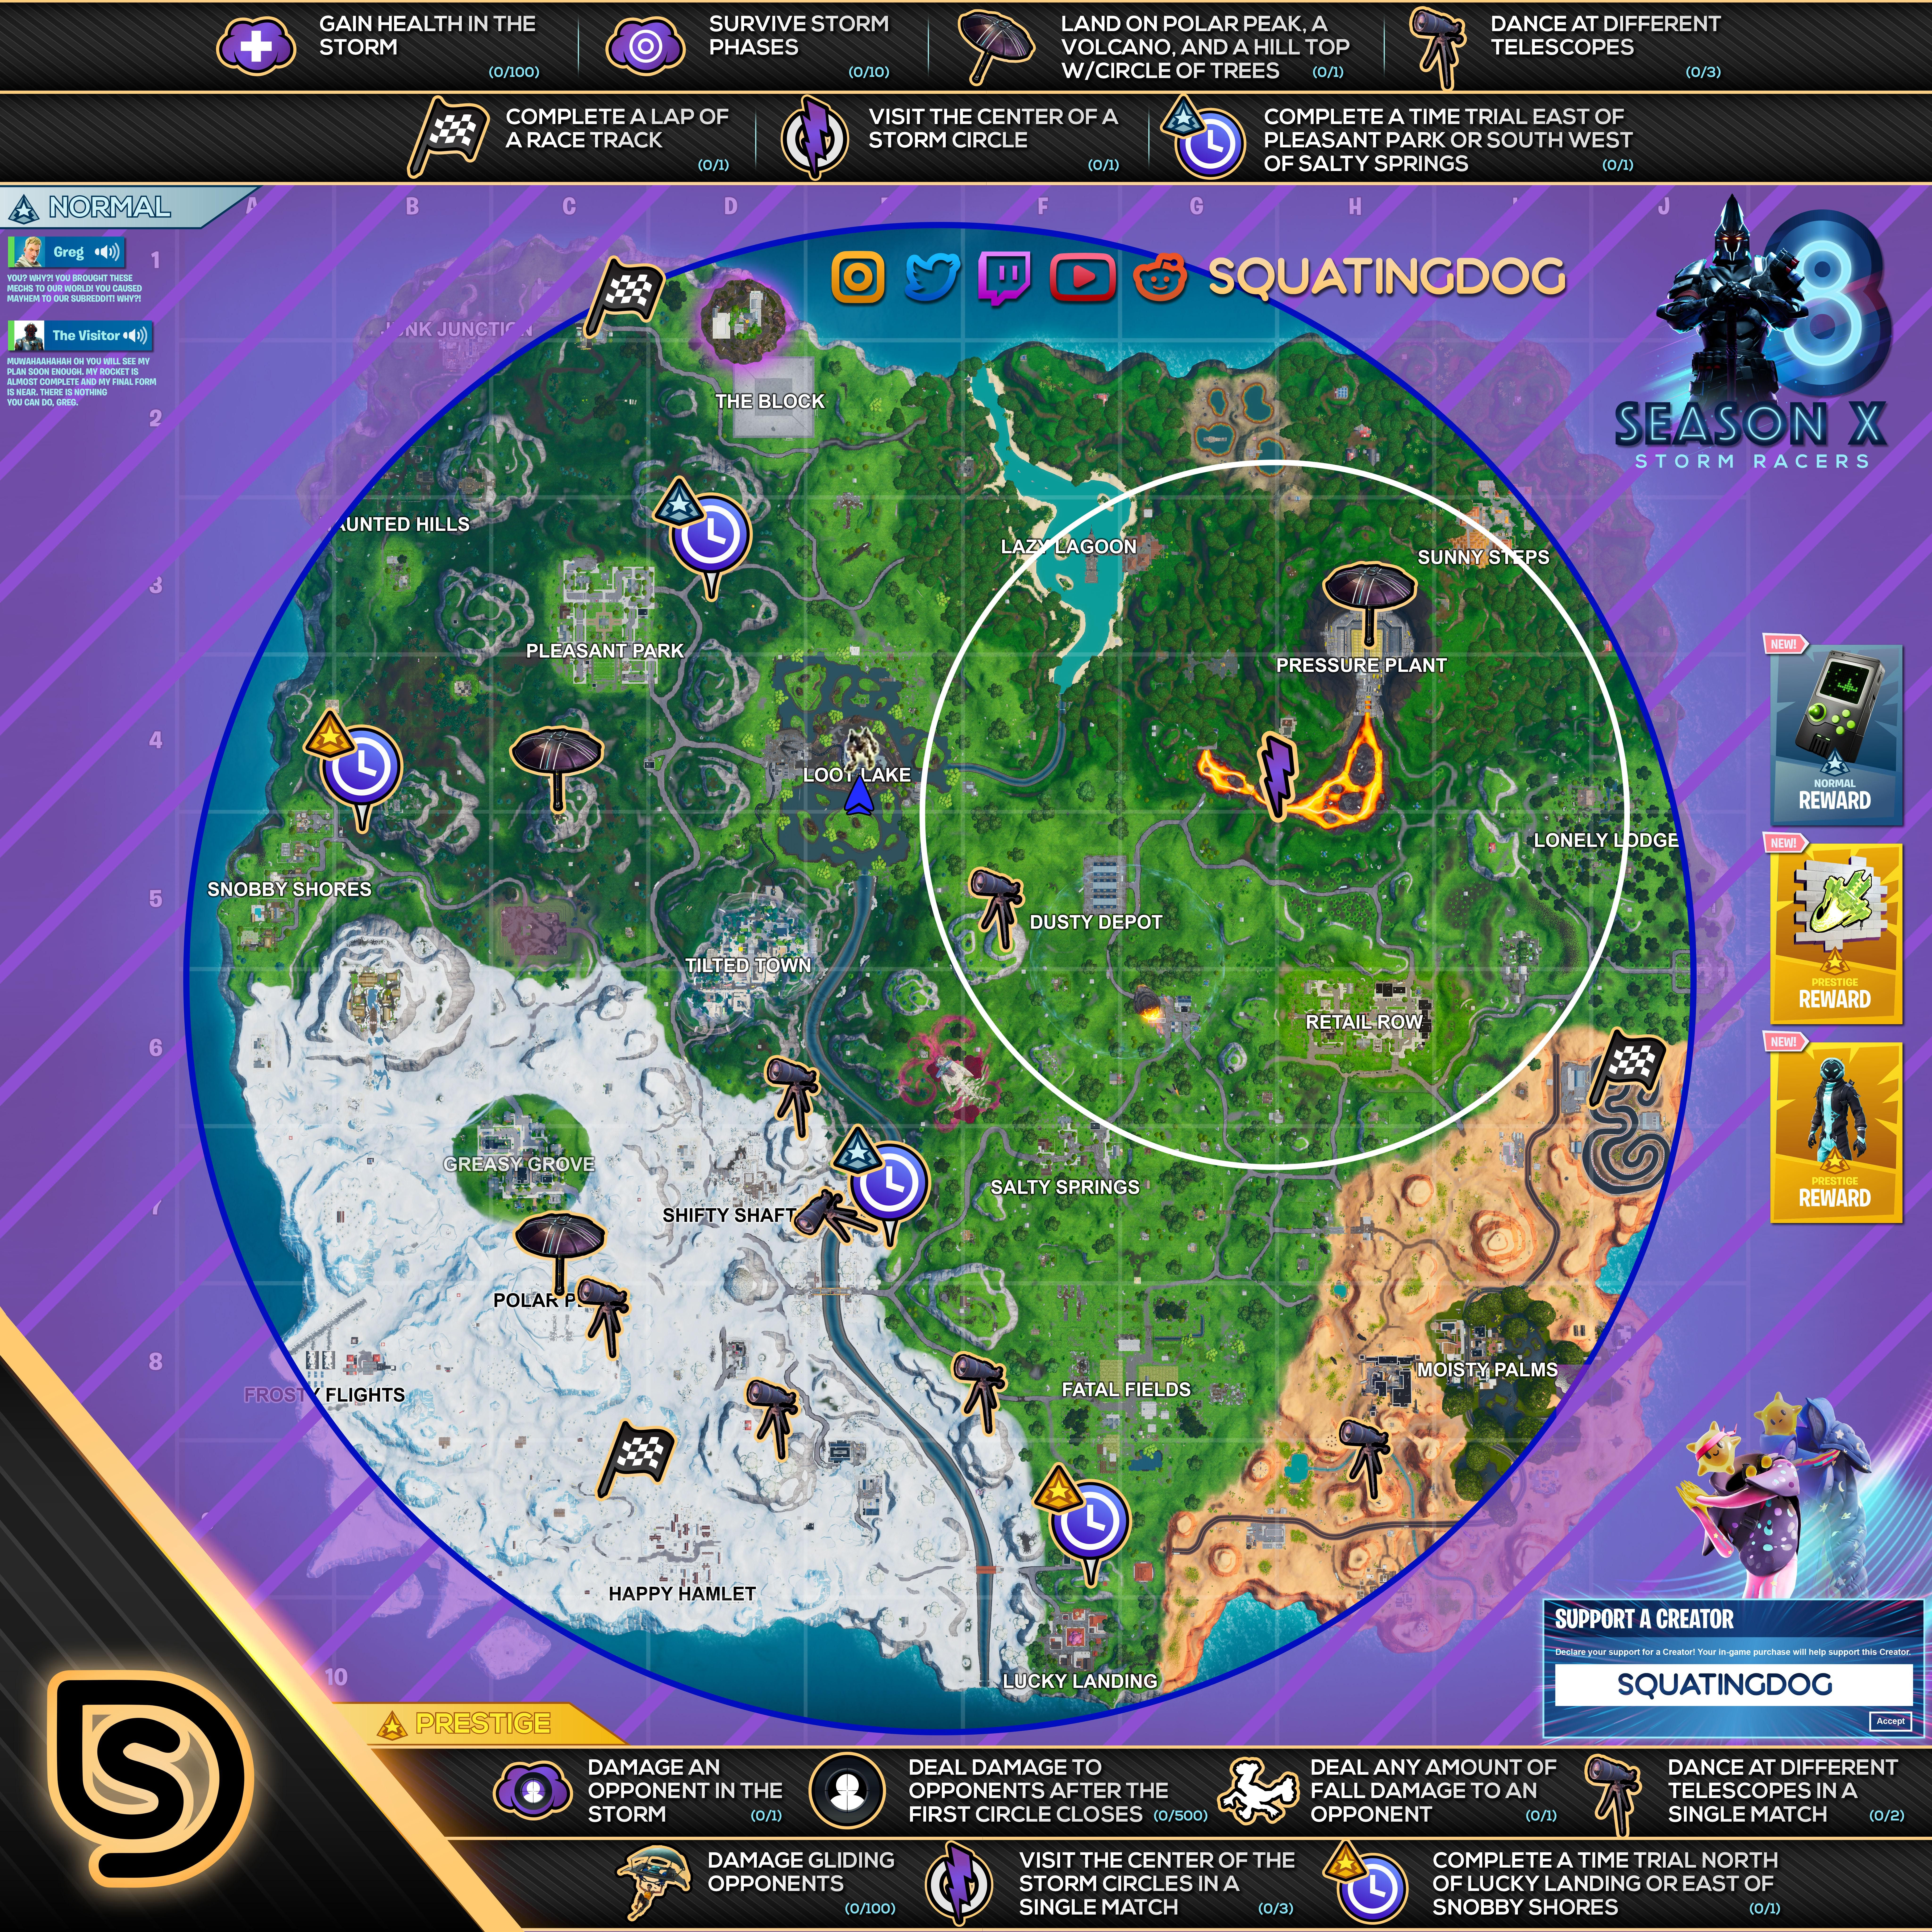 Fortnite Season X10 Week 8 Storm Racers Cheat Sheet Map